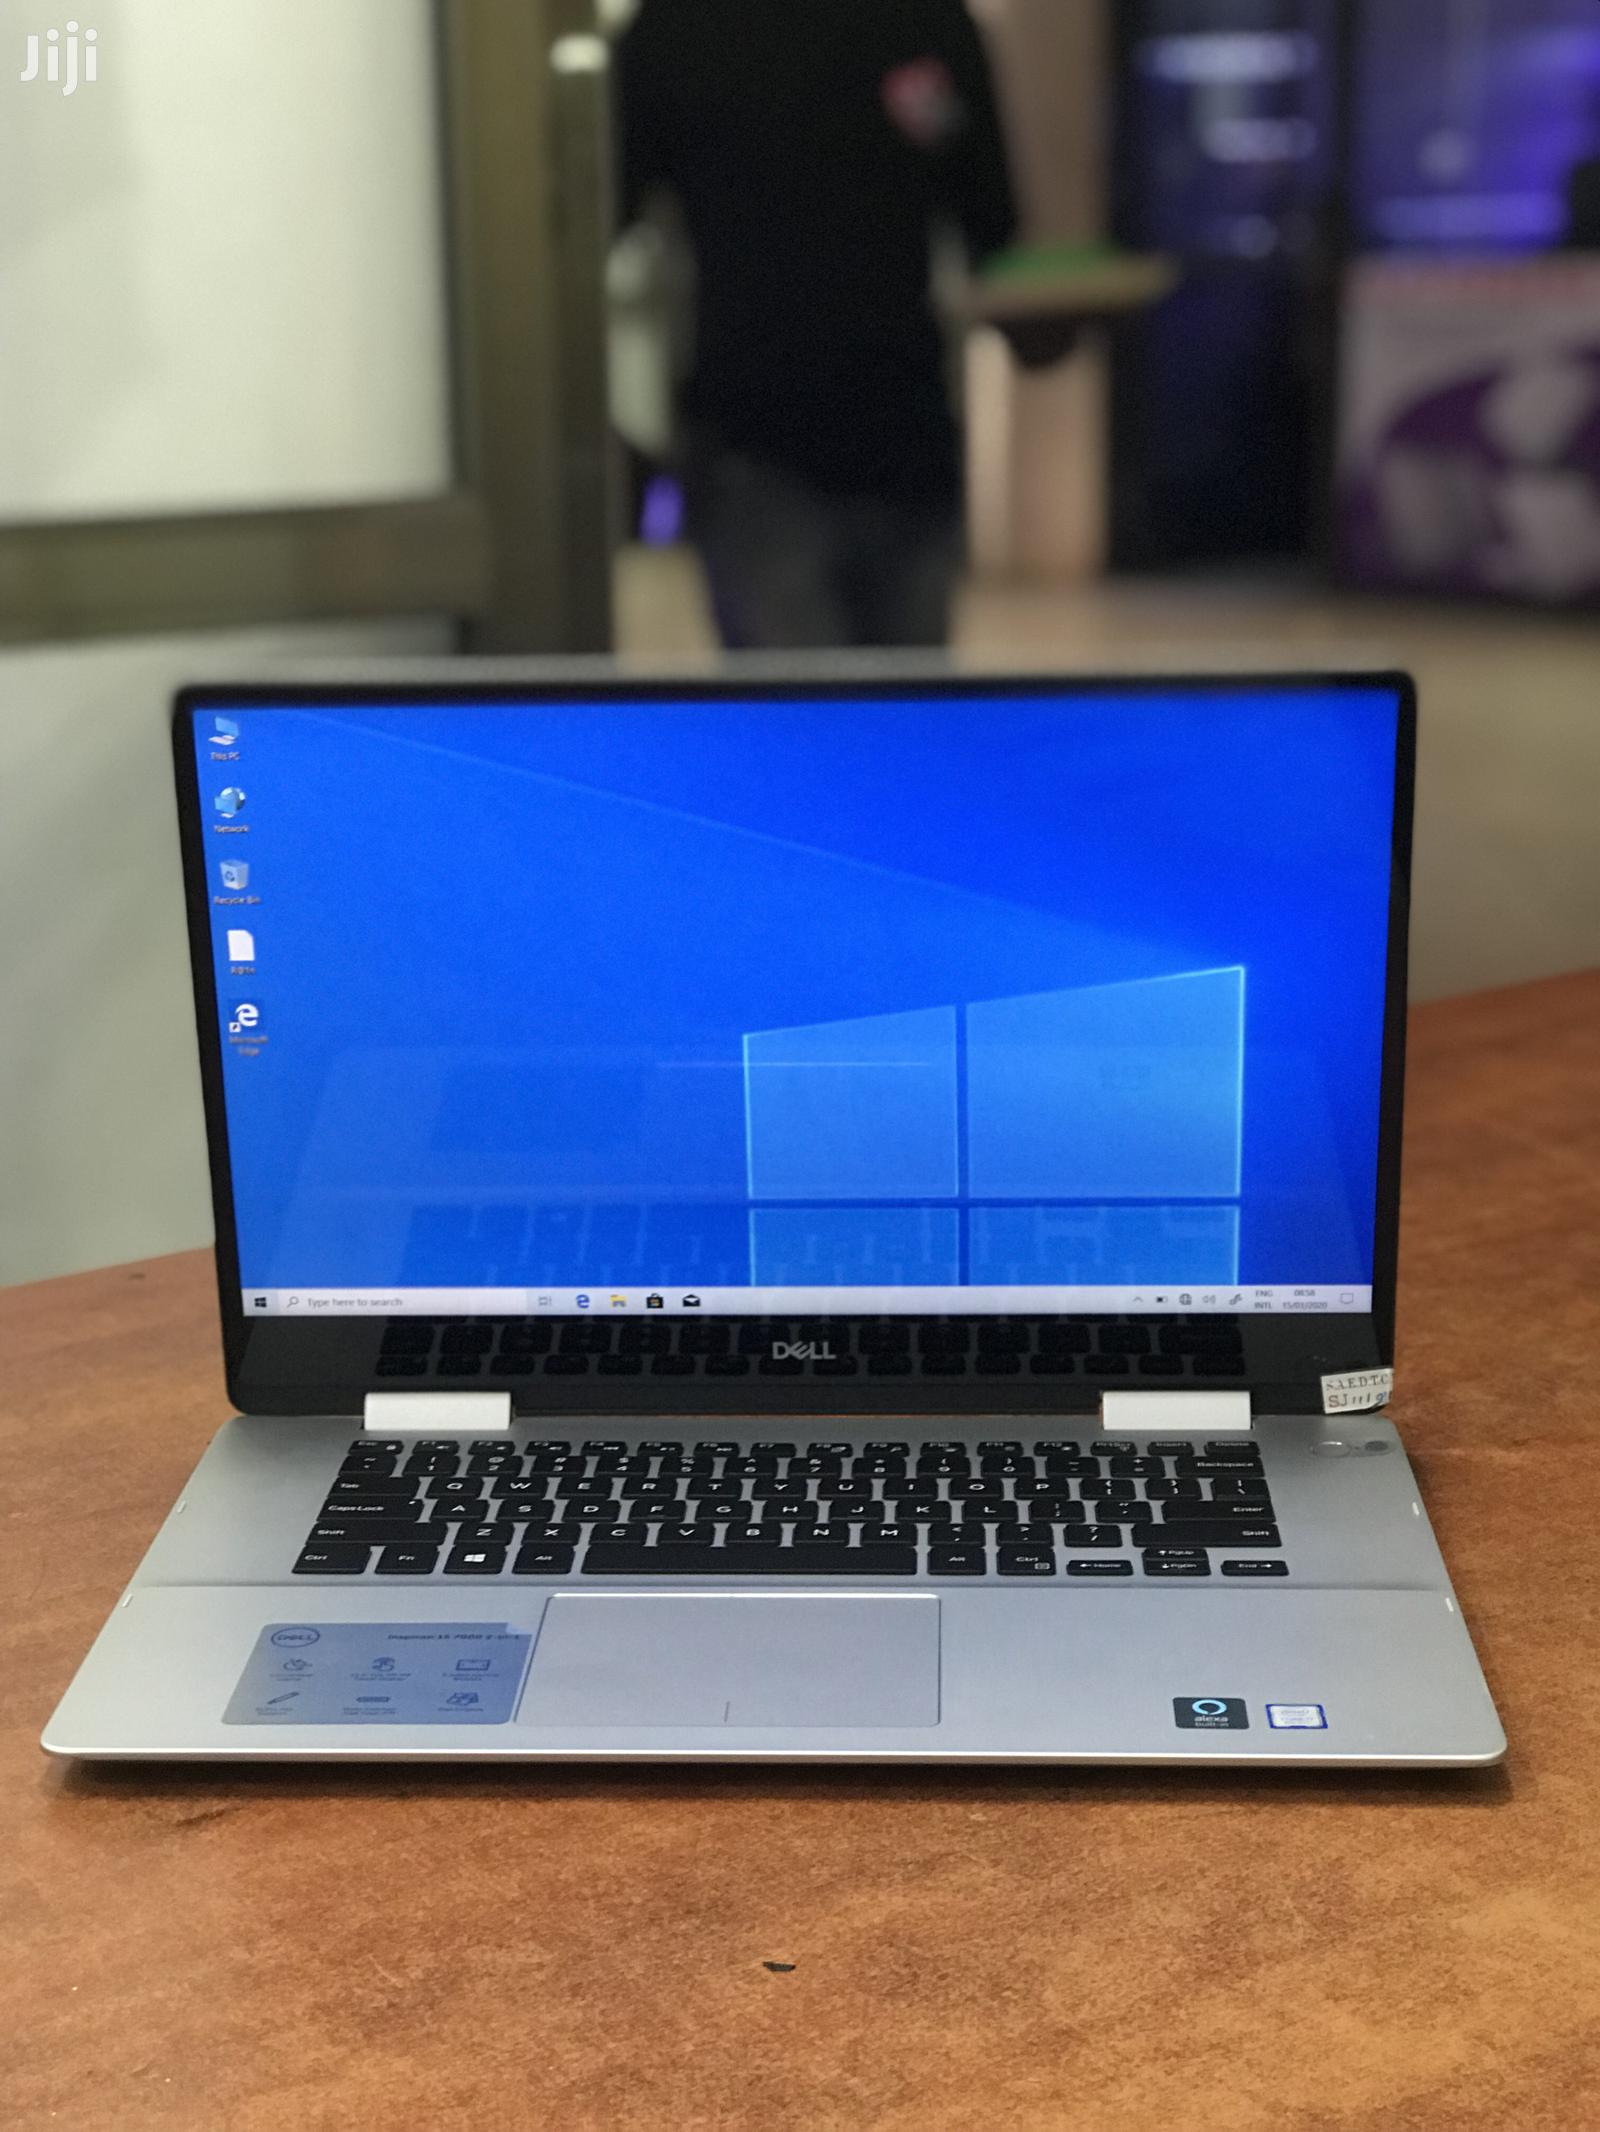 New Laptop Dell Inspiron 15 7000 8GB Intel Core I7 SSD 256GB | Laptops & Computers for sale in Kampala, Central Region, Uganda